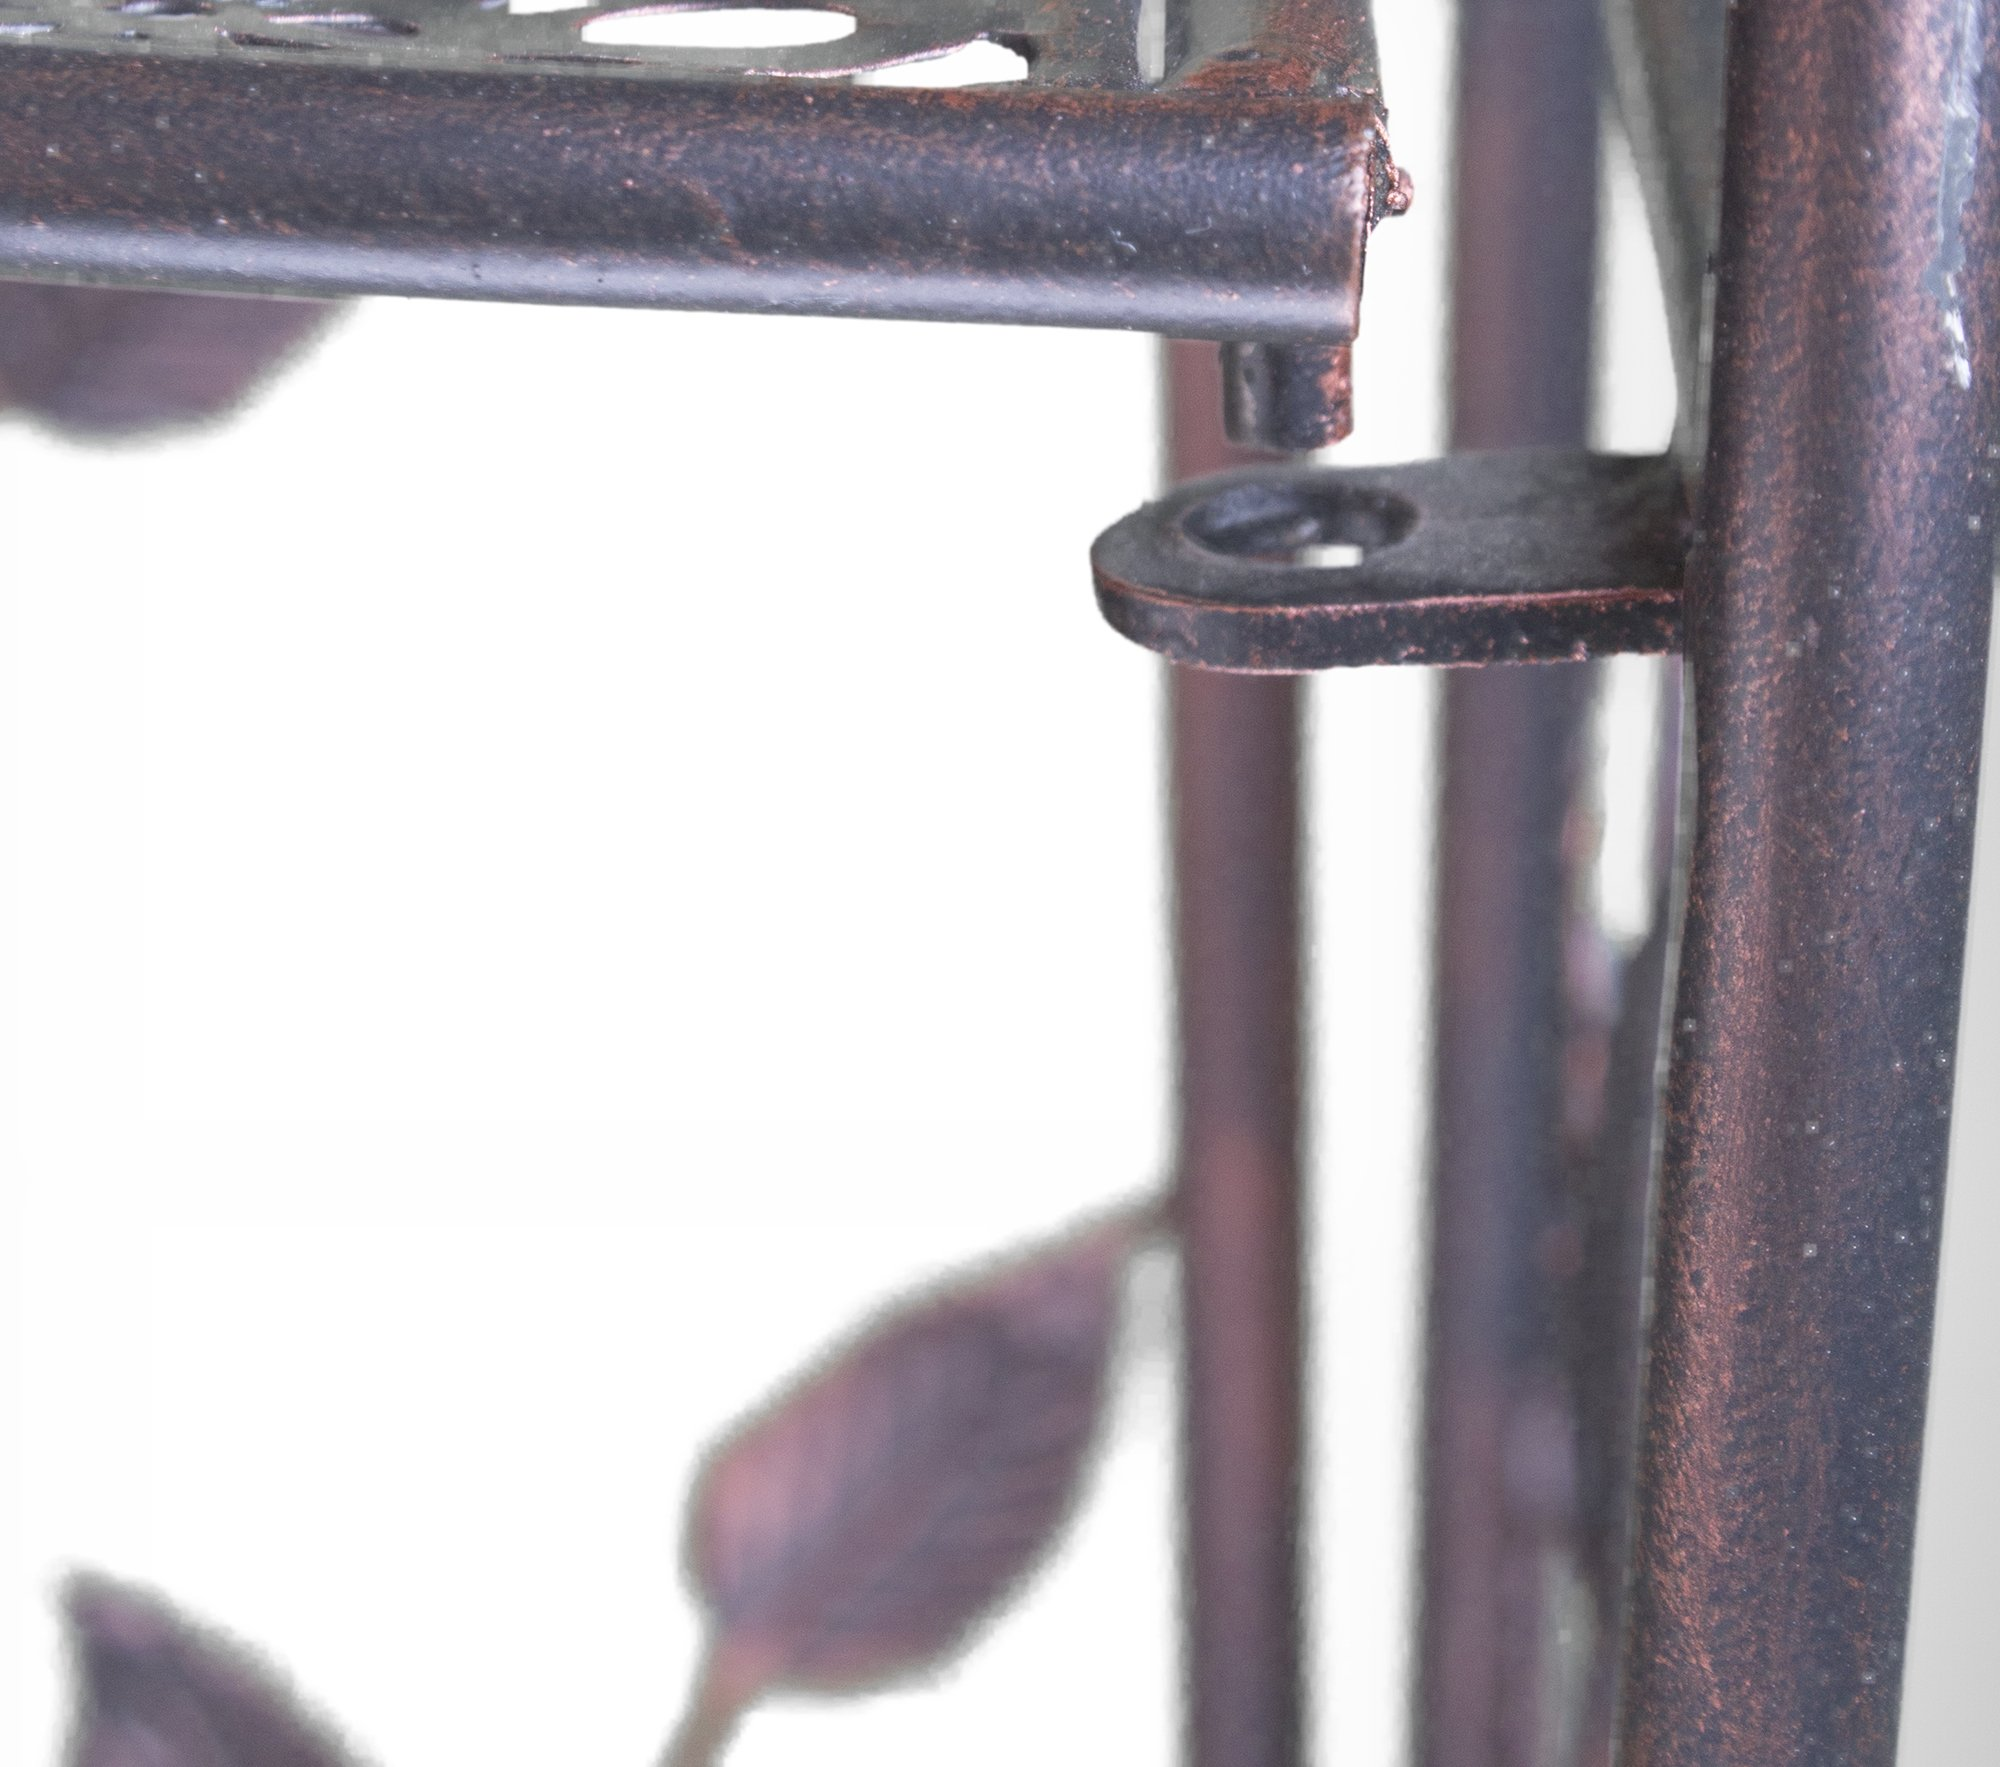 Heather Ann Creations W190795-BC Daisy Kitchen Corner Bakers Rack, Blackened Copper by Heather Ann Creations (Image #6)